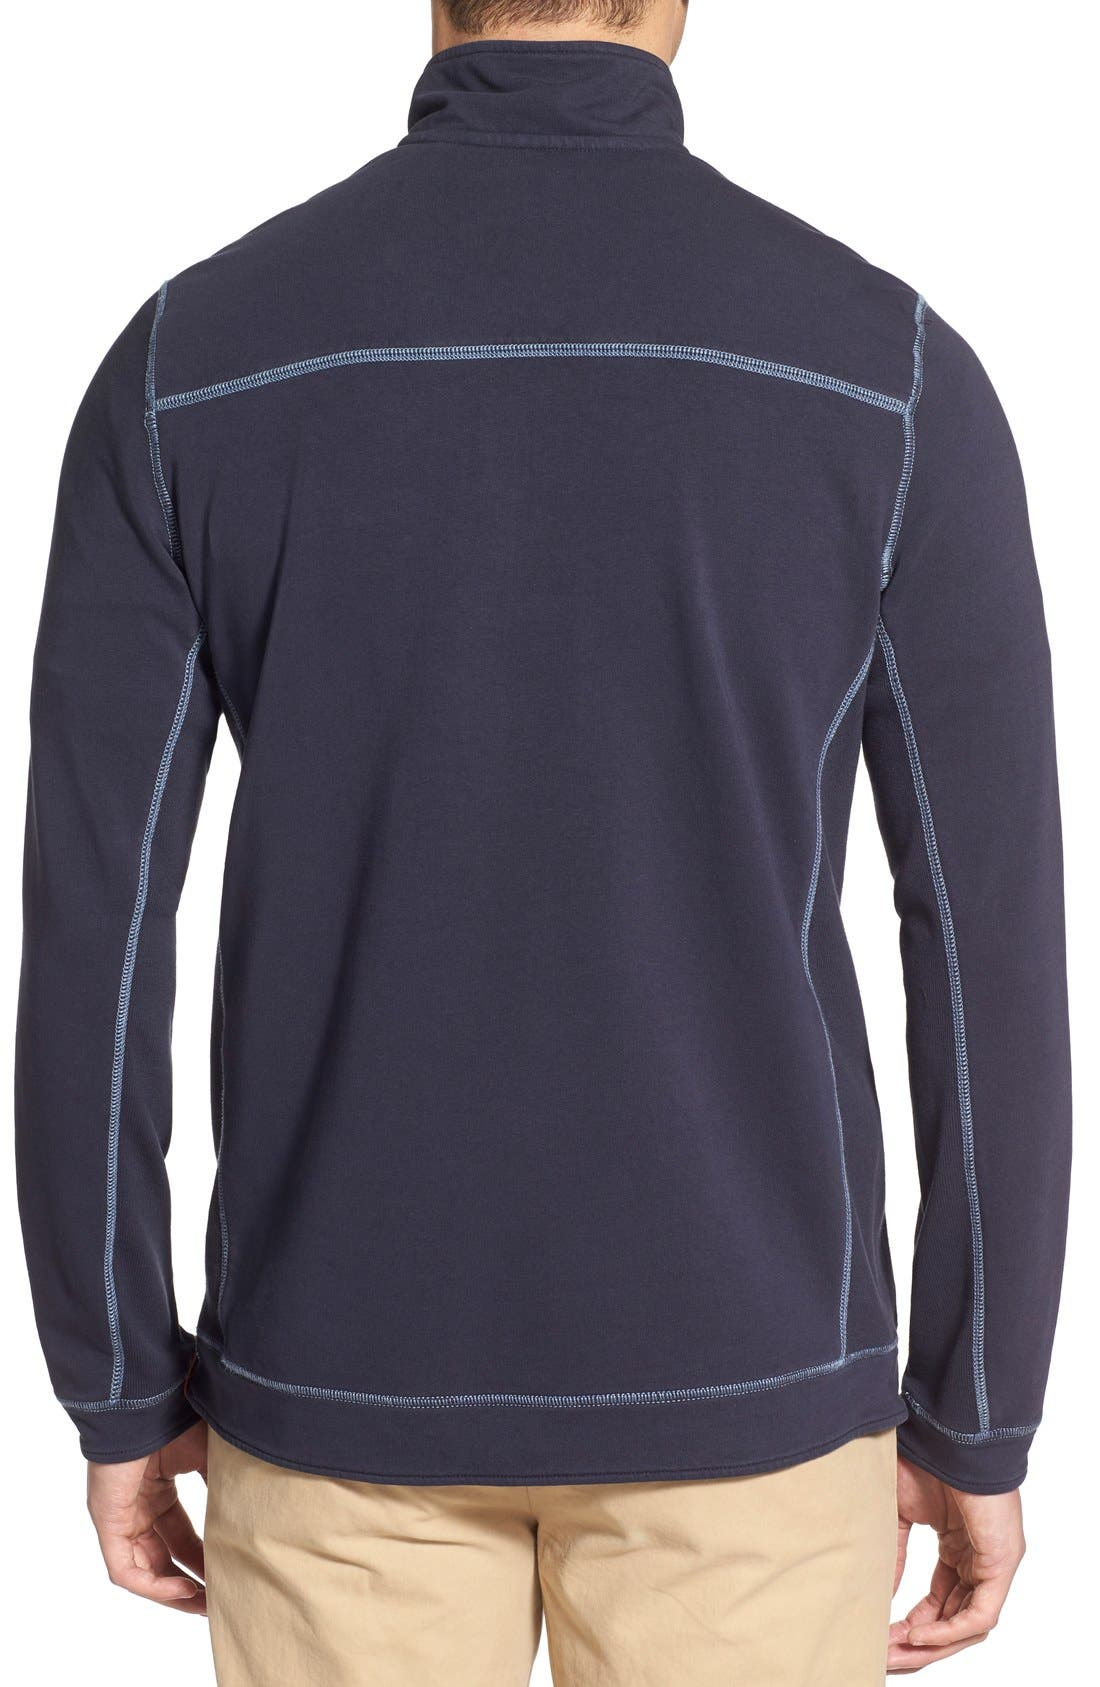 TOMMY BAHAMA,                             'Ben & Terry' Half Zip Pullover,                             Alternate thumbnail 3, color,                             001